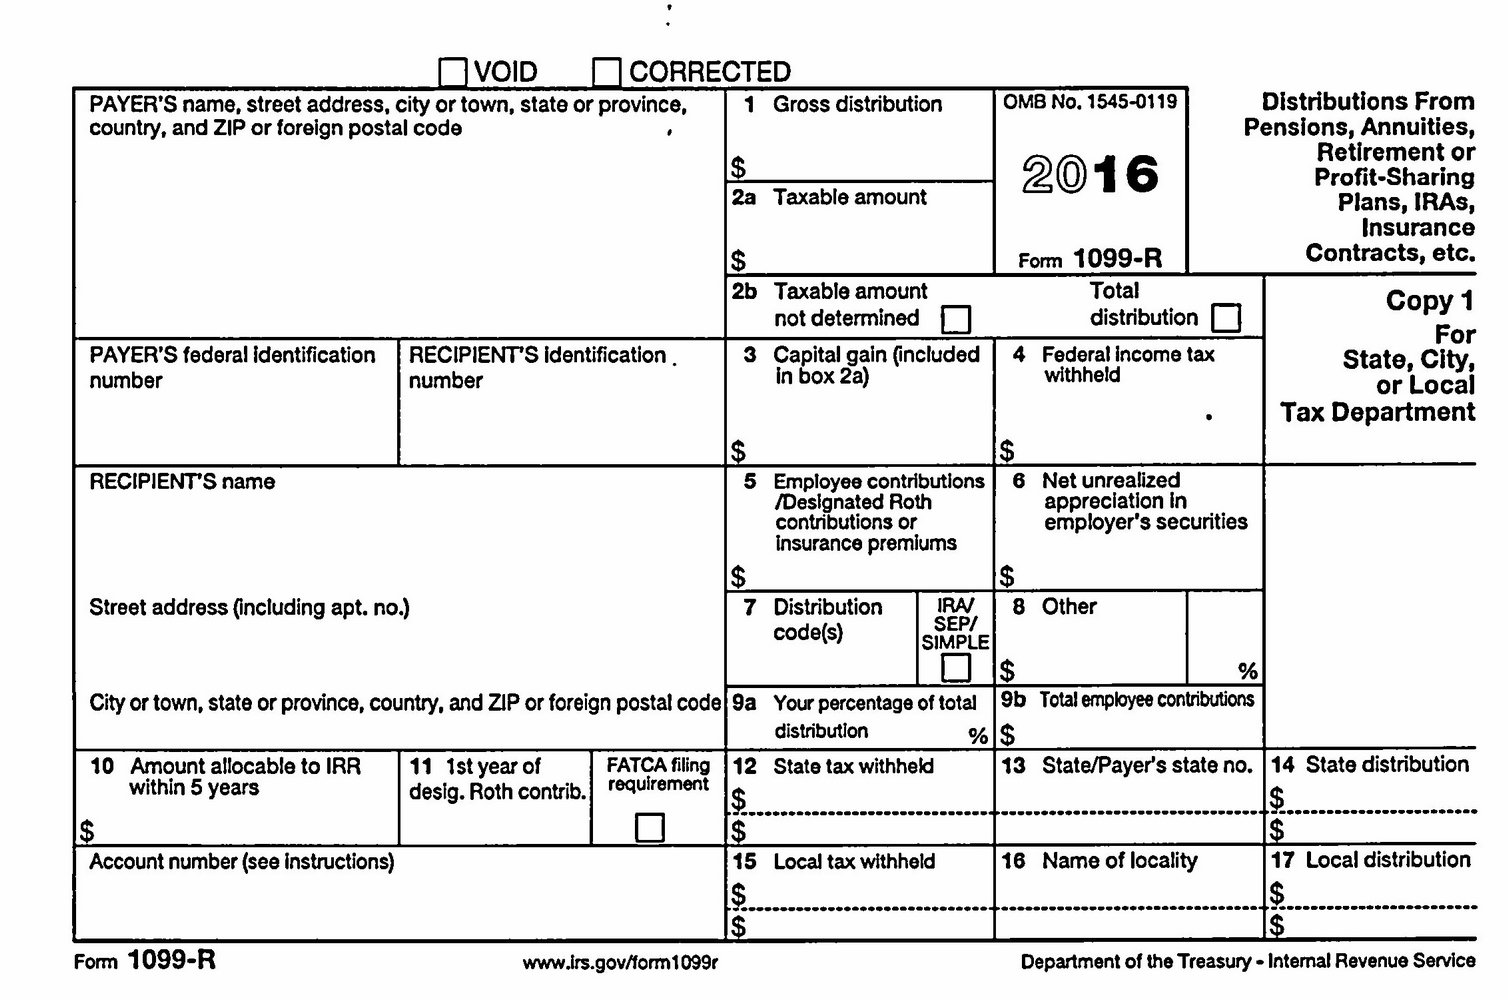 How To Fill Out A 1099 Form 2018